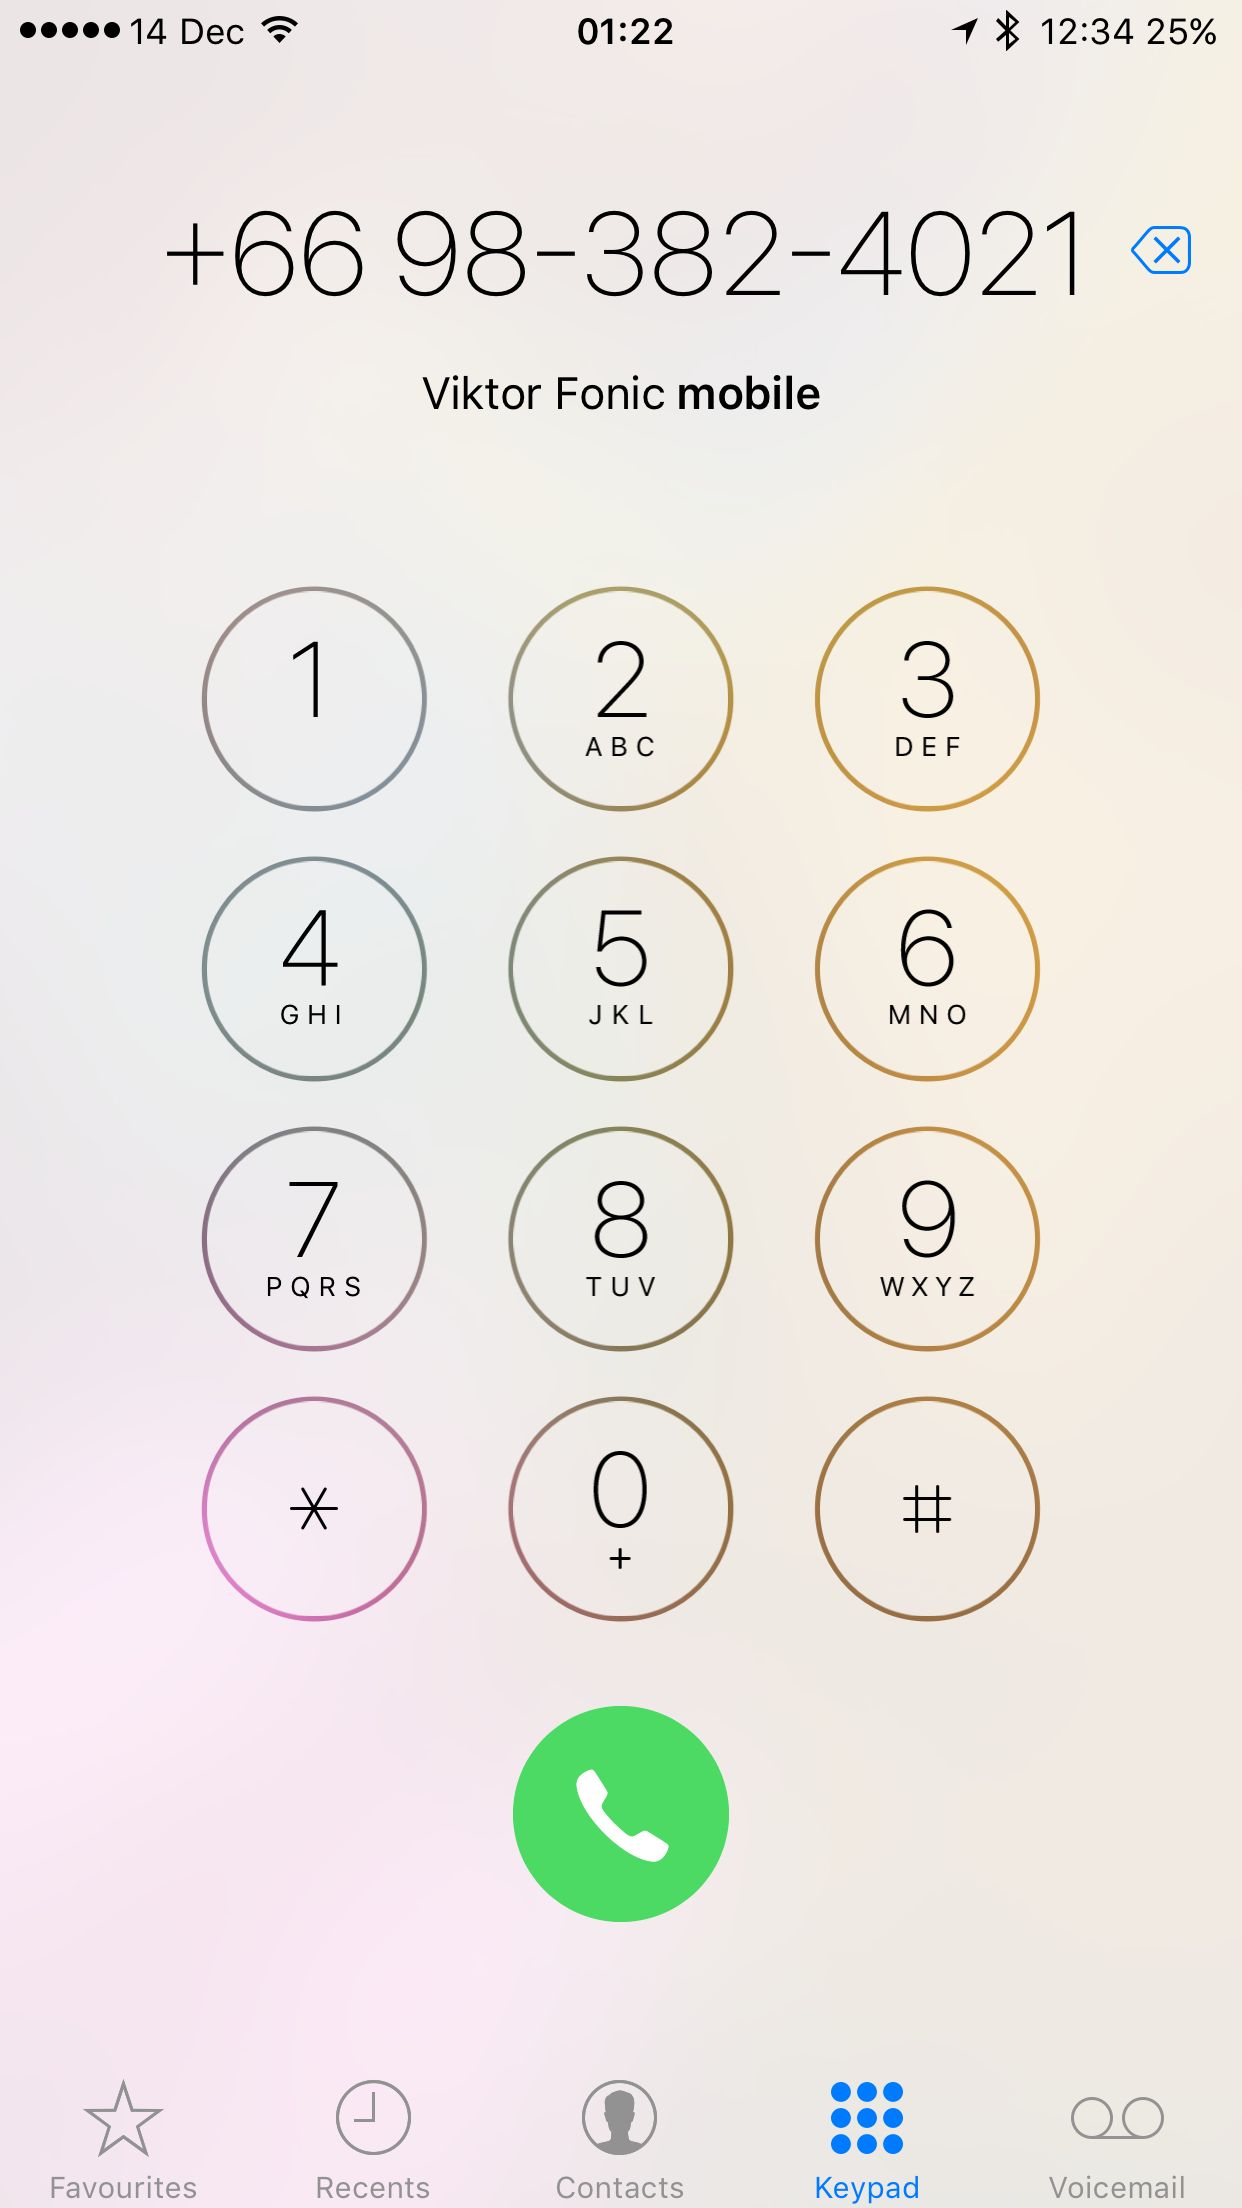 /the-user-experience-of-mobile-phone-numbers-4507deee3495 feature image